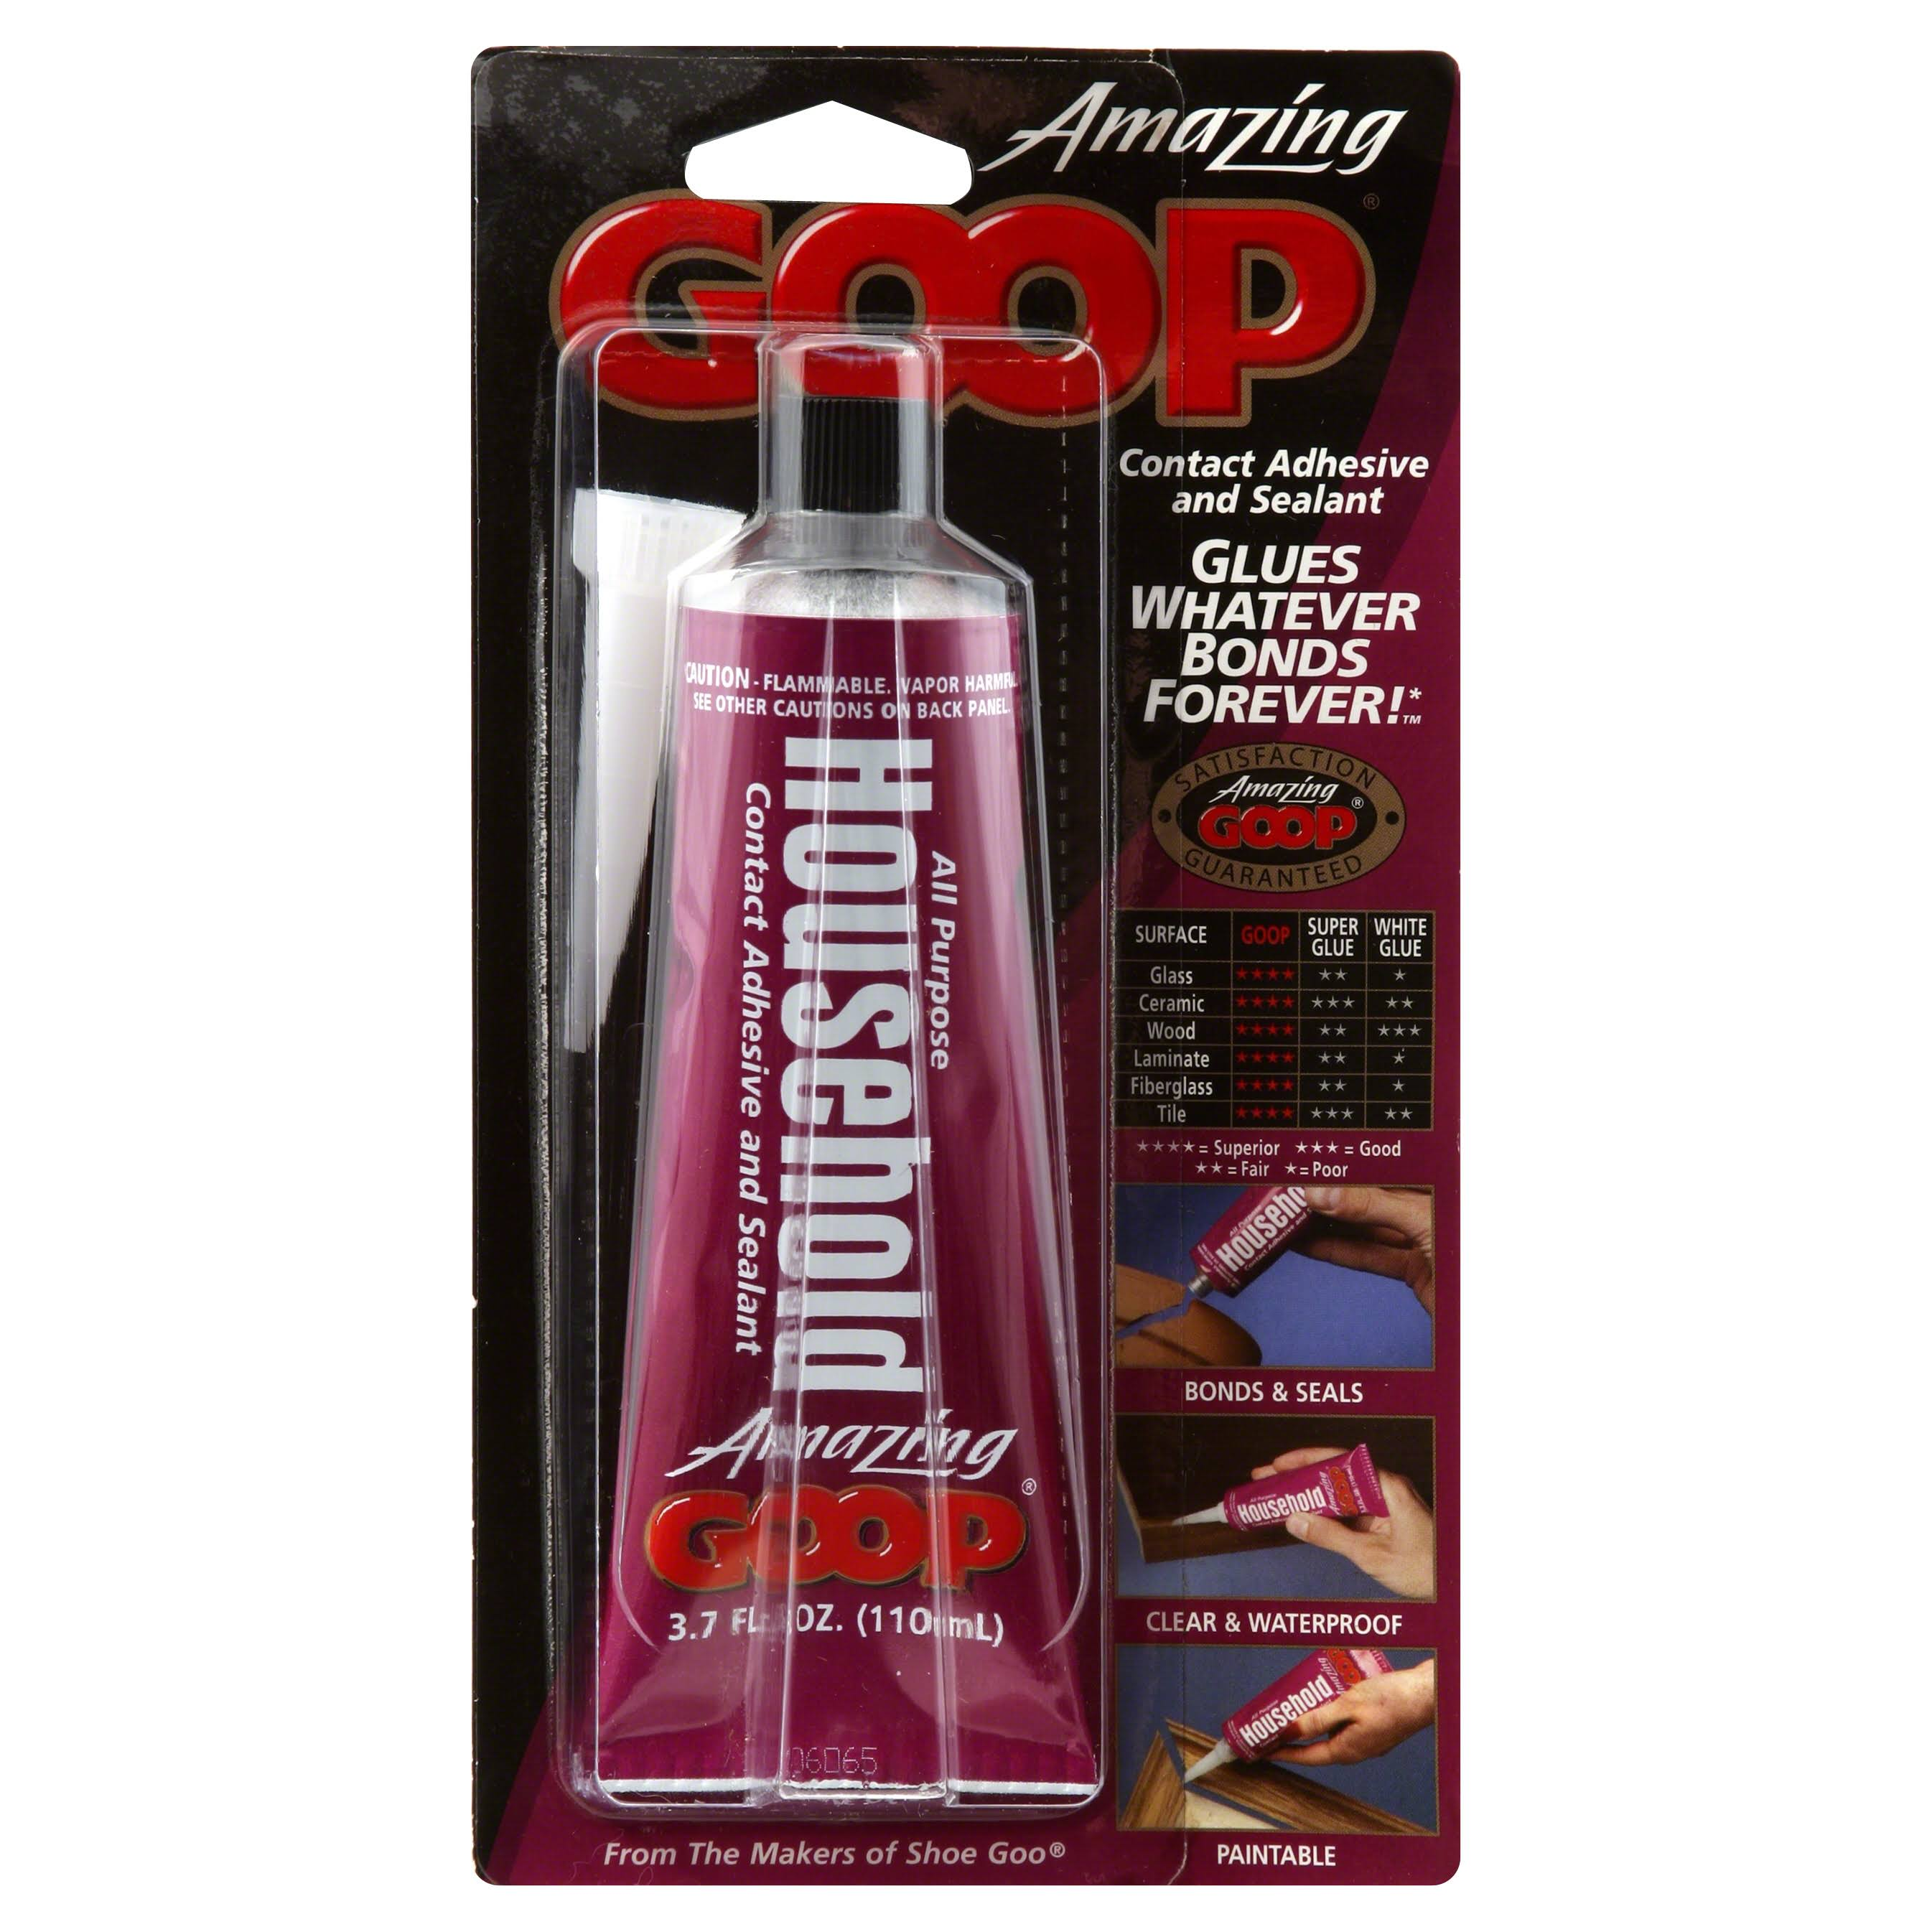 Amazing Goop Household Contact Adhesive and Sealant - 3.7oz